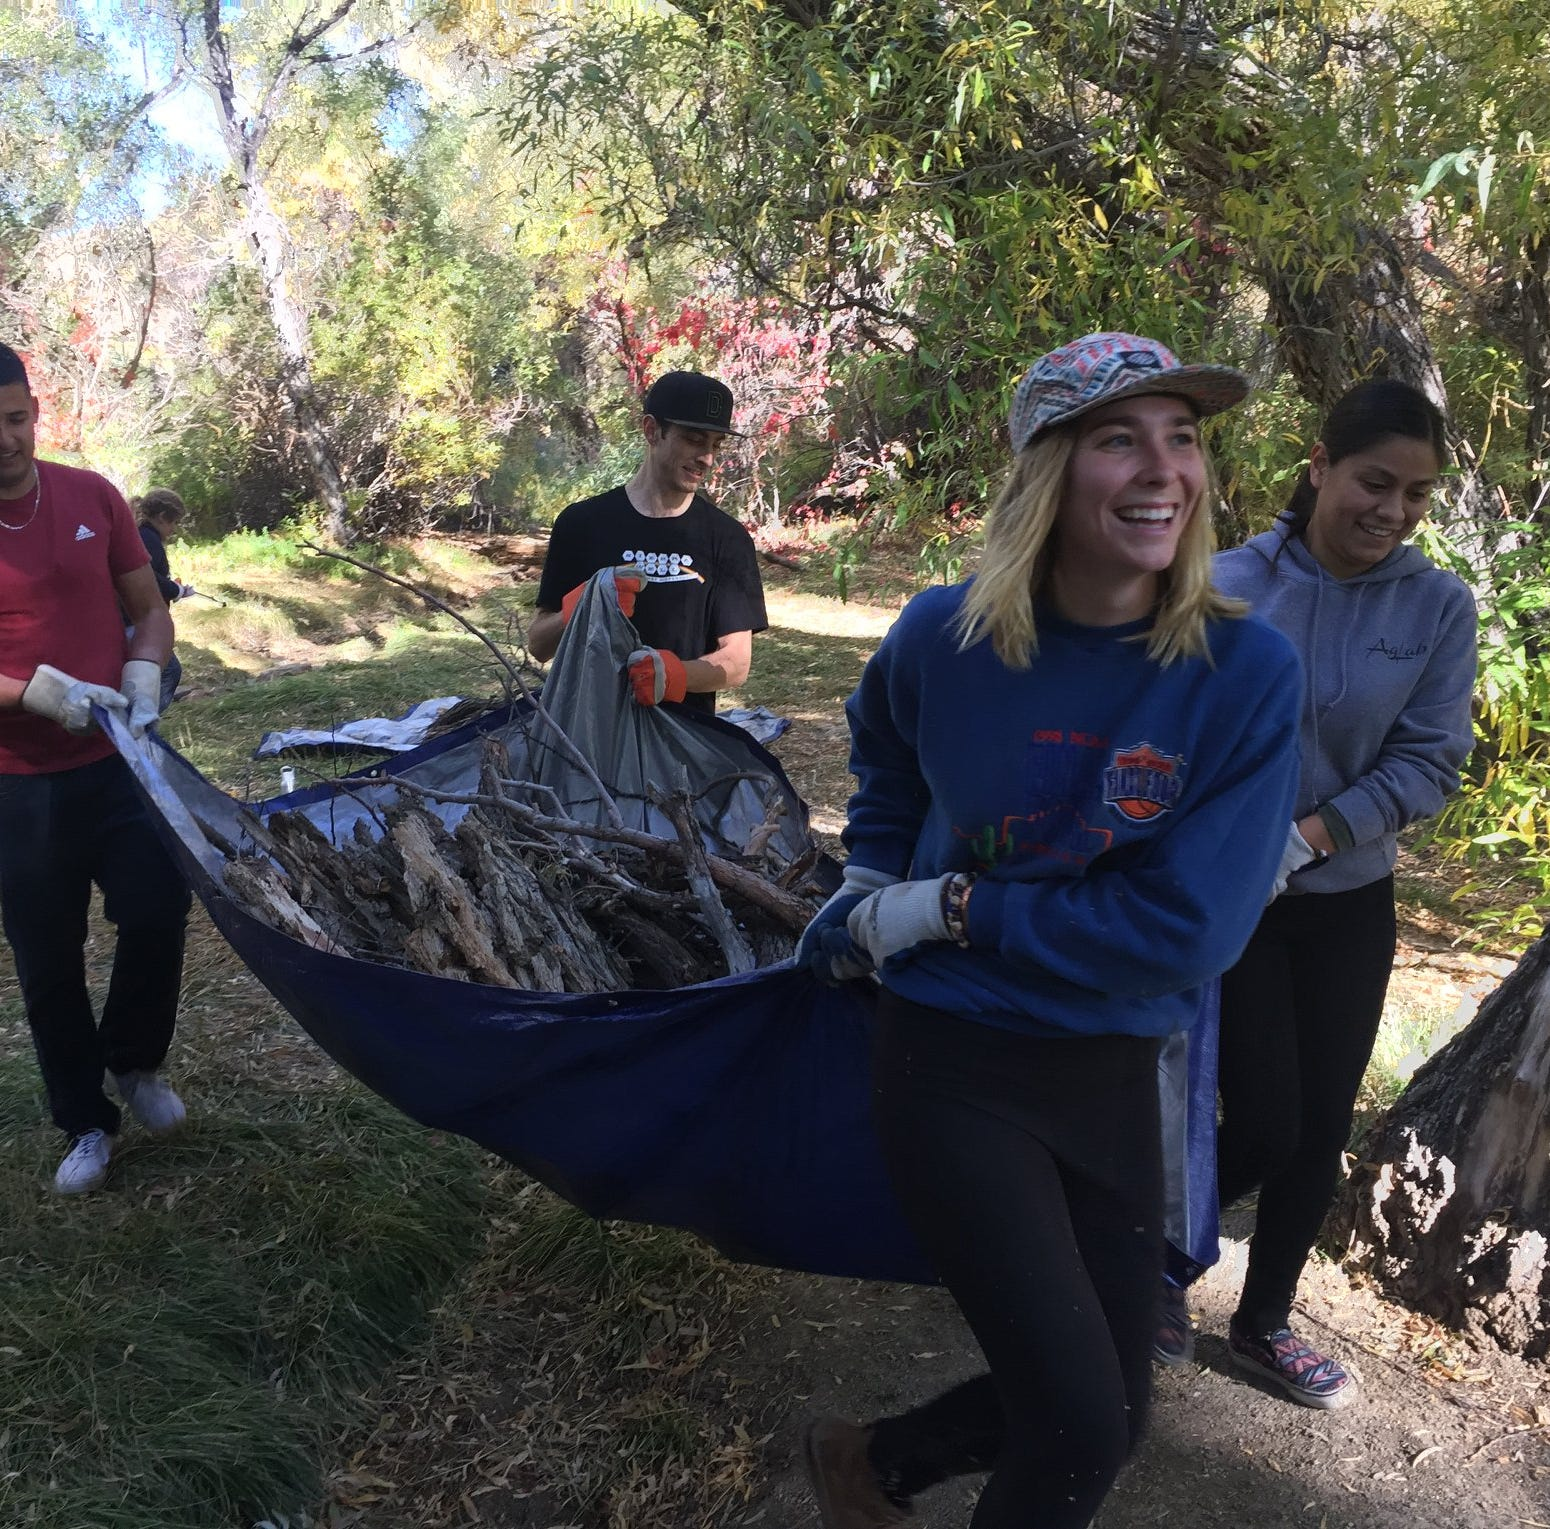 Volunteers removed 24,450 lbs of trash from the Truckee River during cleanup this weekend